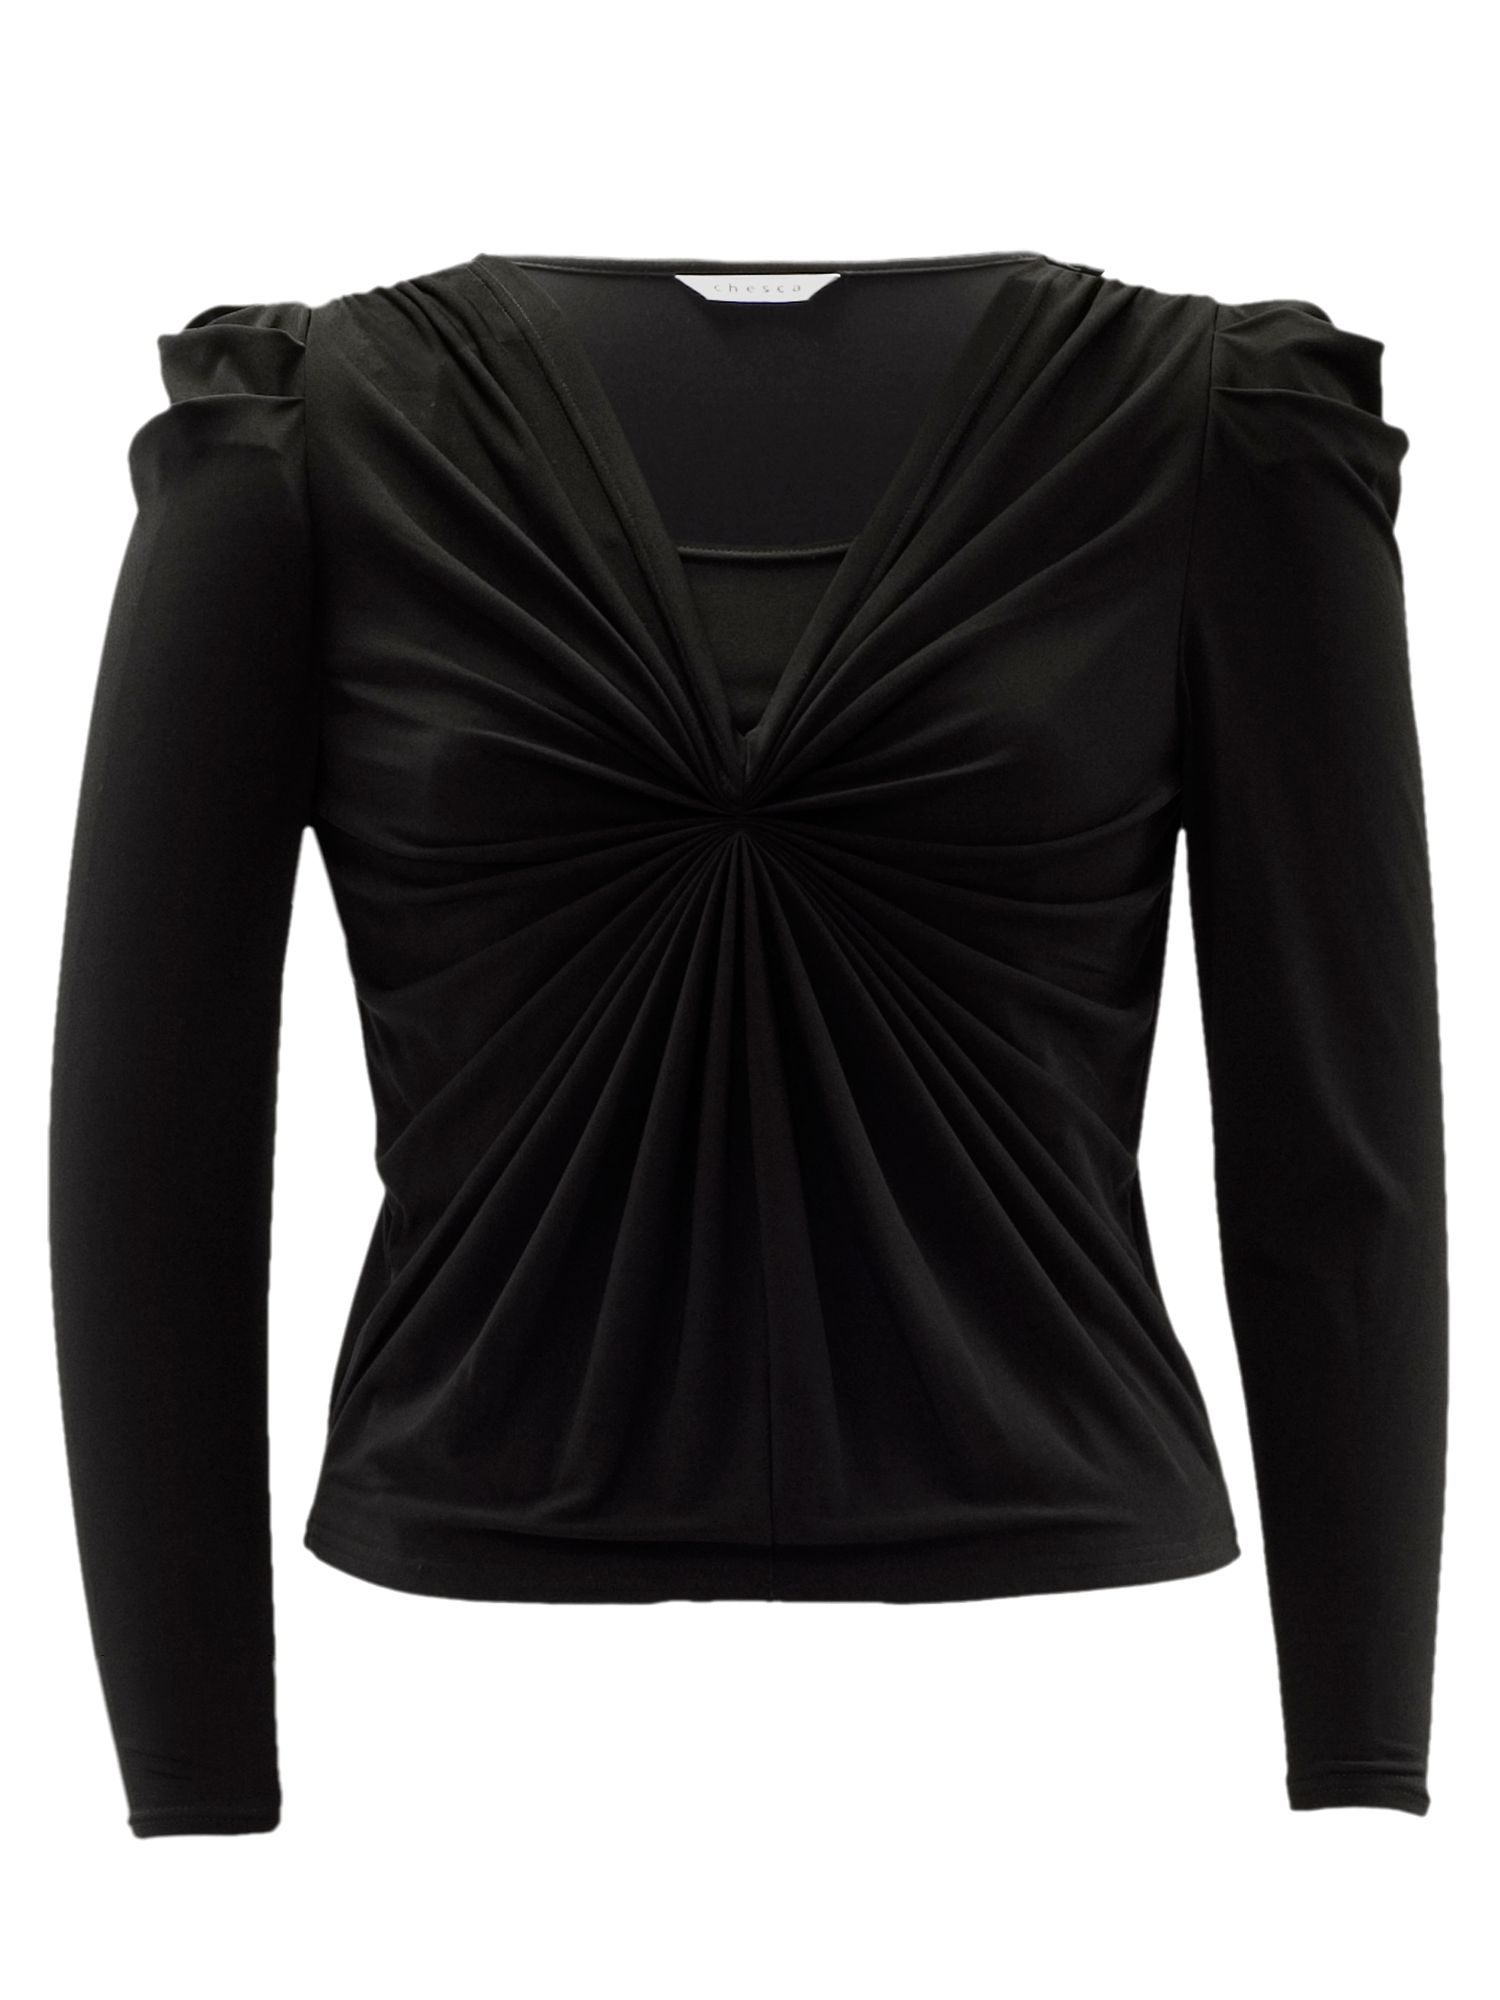 Fan pleat top